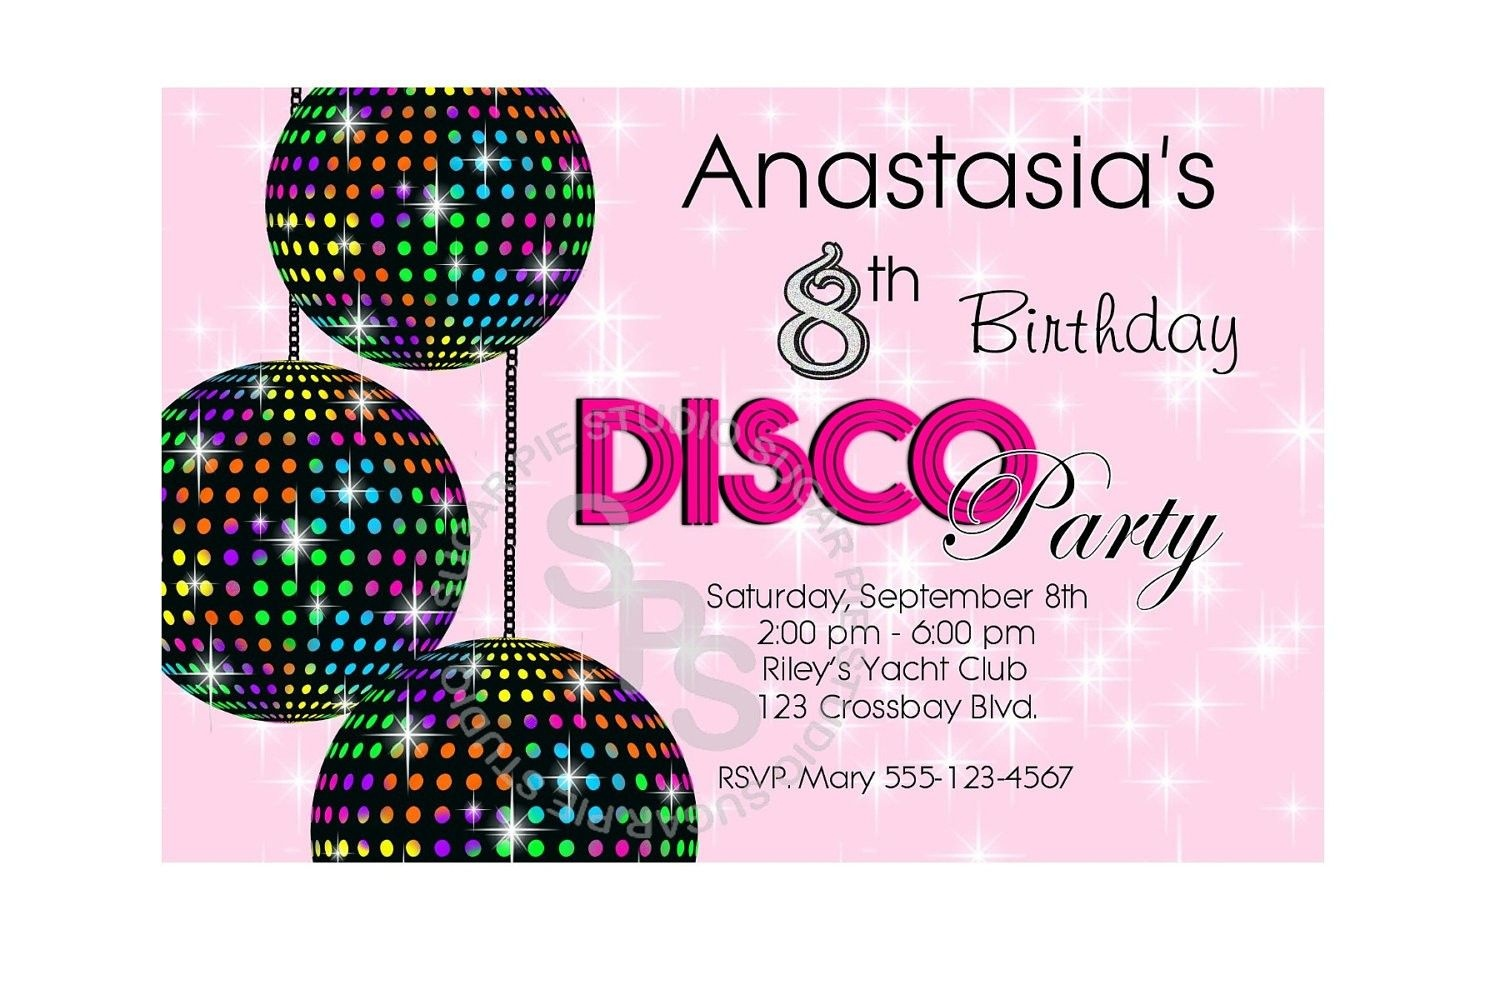 Free Disco Free Party Invites For Children | Lugares Para Visitar - Free Printable 80S Birthday Party Invitations